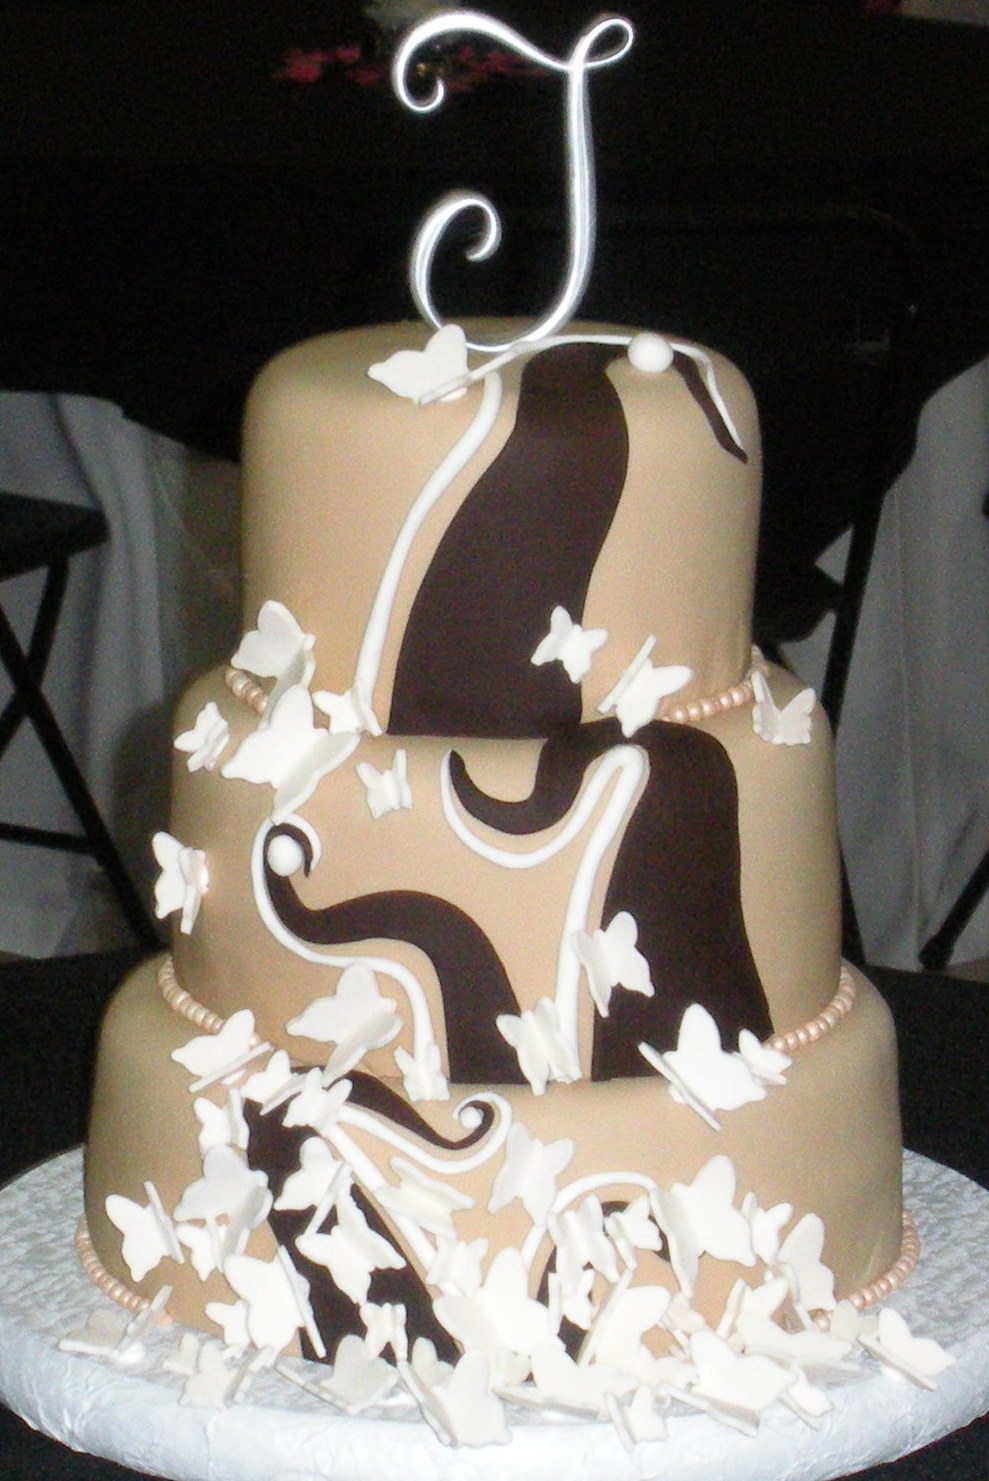 Custom Unique Artistic Fondant Birthday And Wedding Cake Designs Pictures By Art Eats Bakery